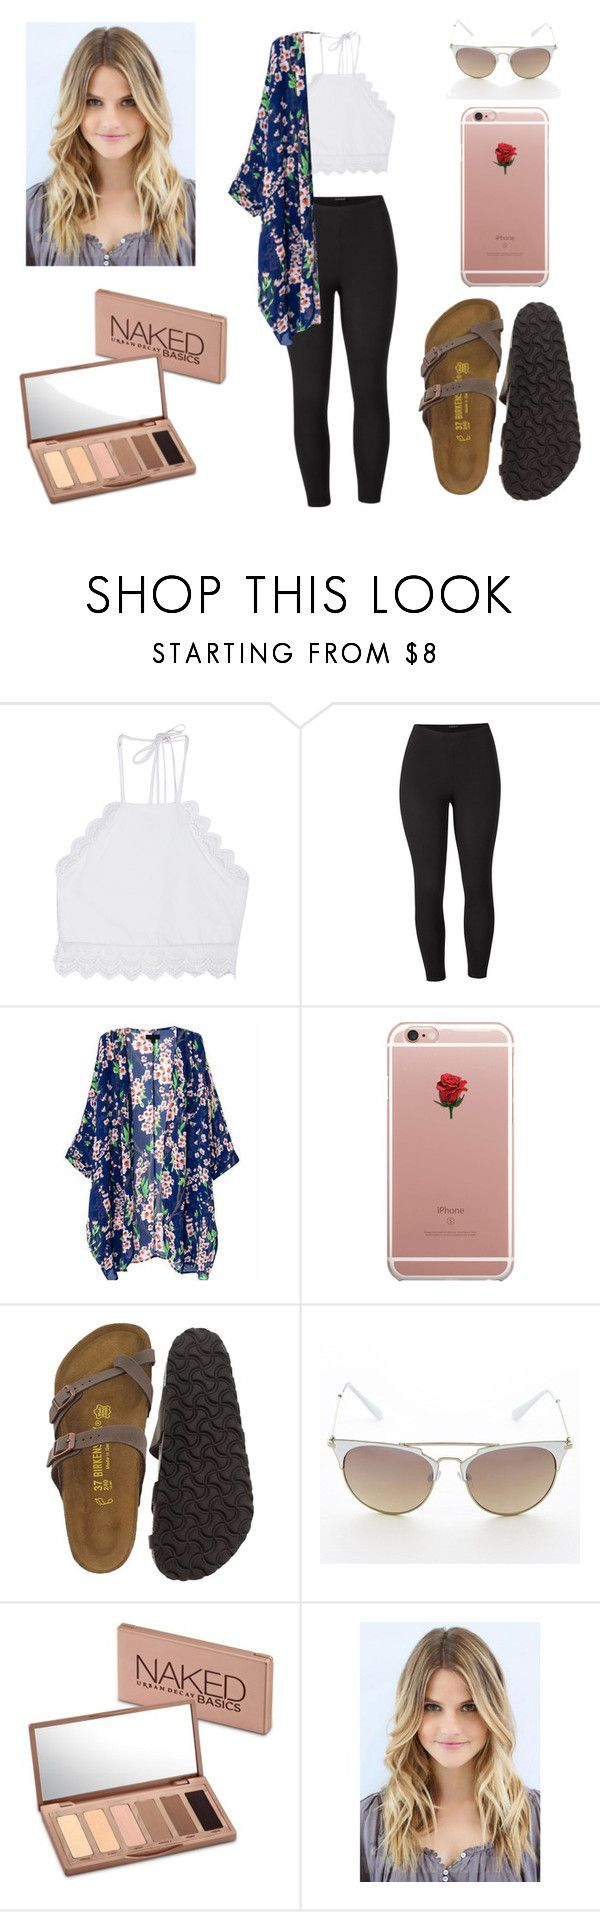 """""""Summer"""" by gracemartin-ii ❤ liked on Polyvore featuring Front Row Shop, Venus, ETUÍ, Birkenstock, Urban Decay and plus size clothing"""